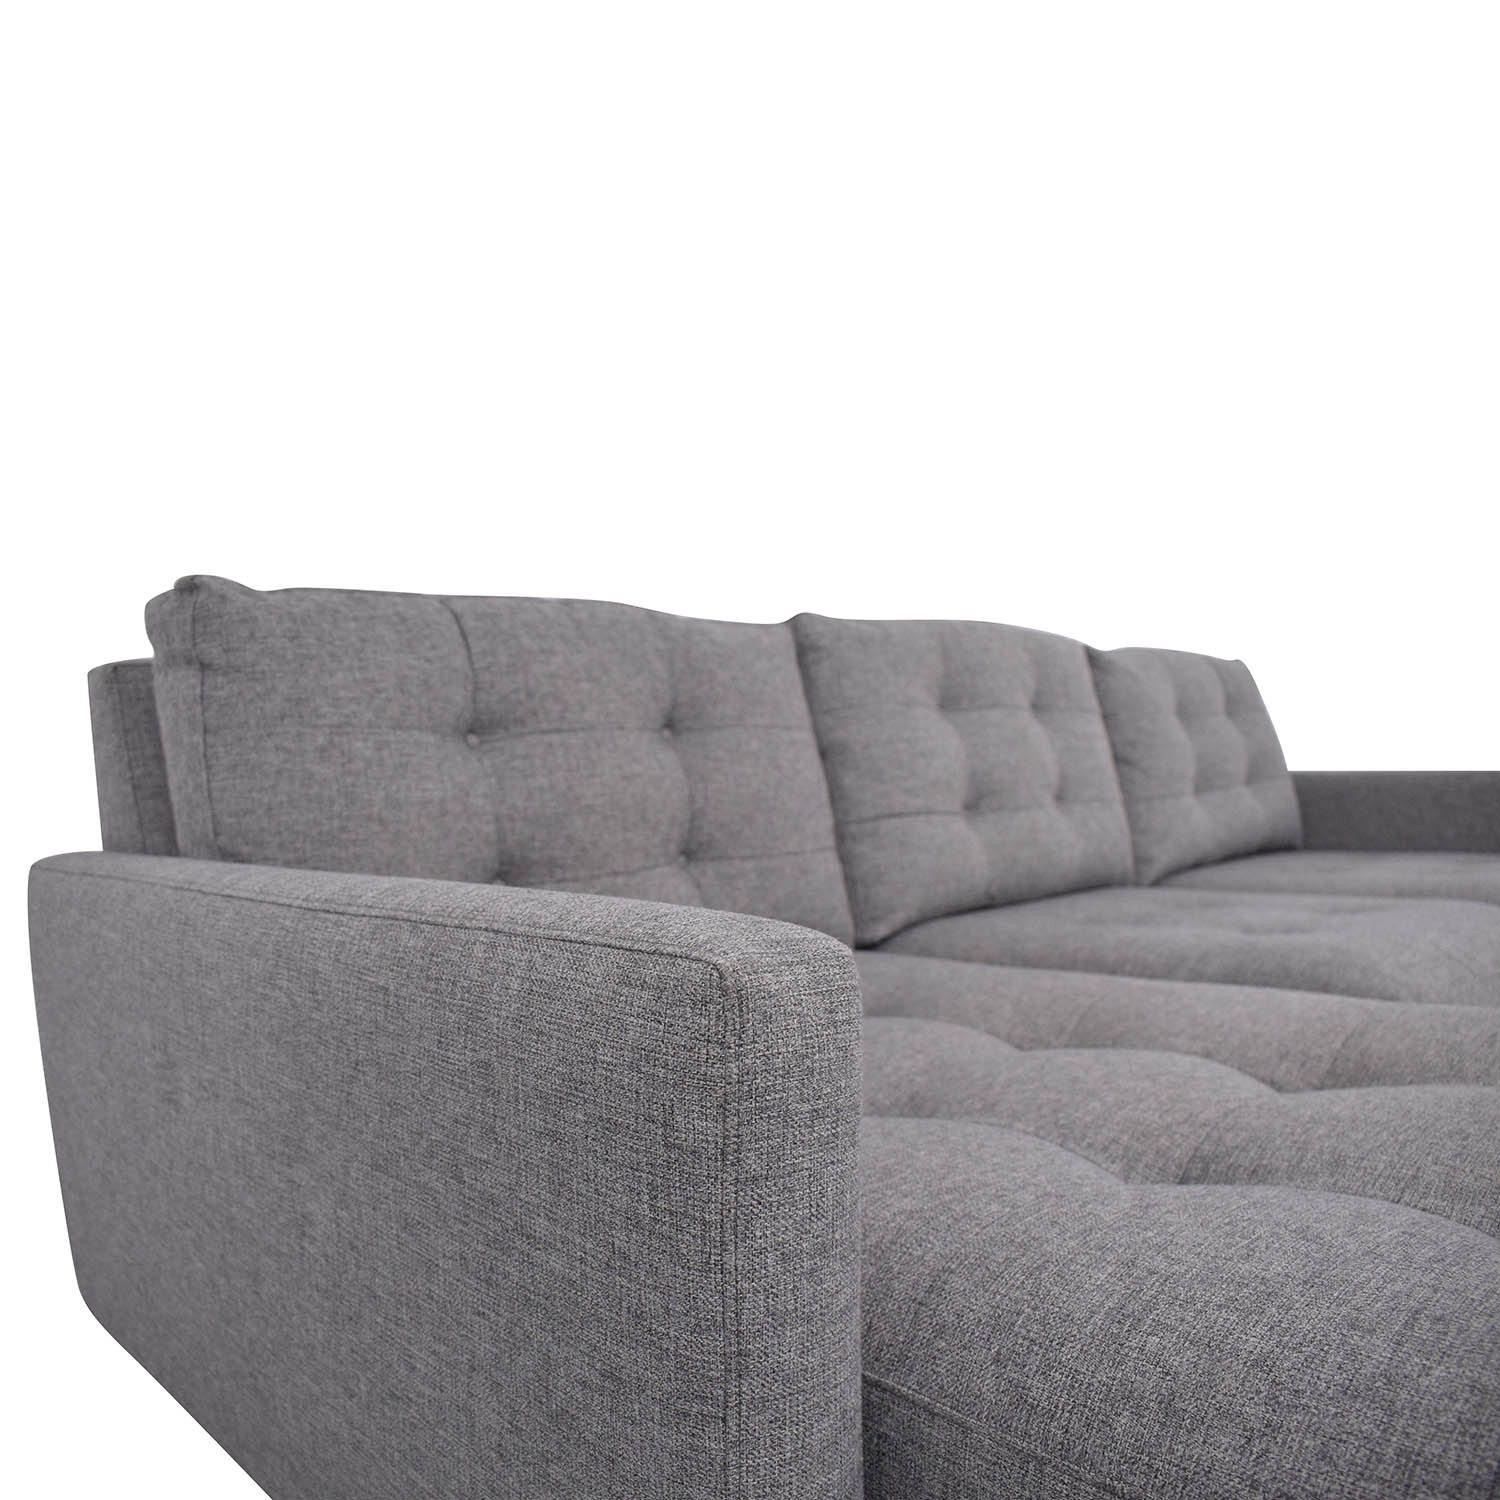 Crate & Barrel Crate & Barrel Petrie Mid Century Sectional Sofa with Chaise second hand